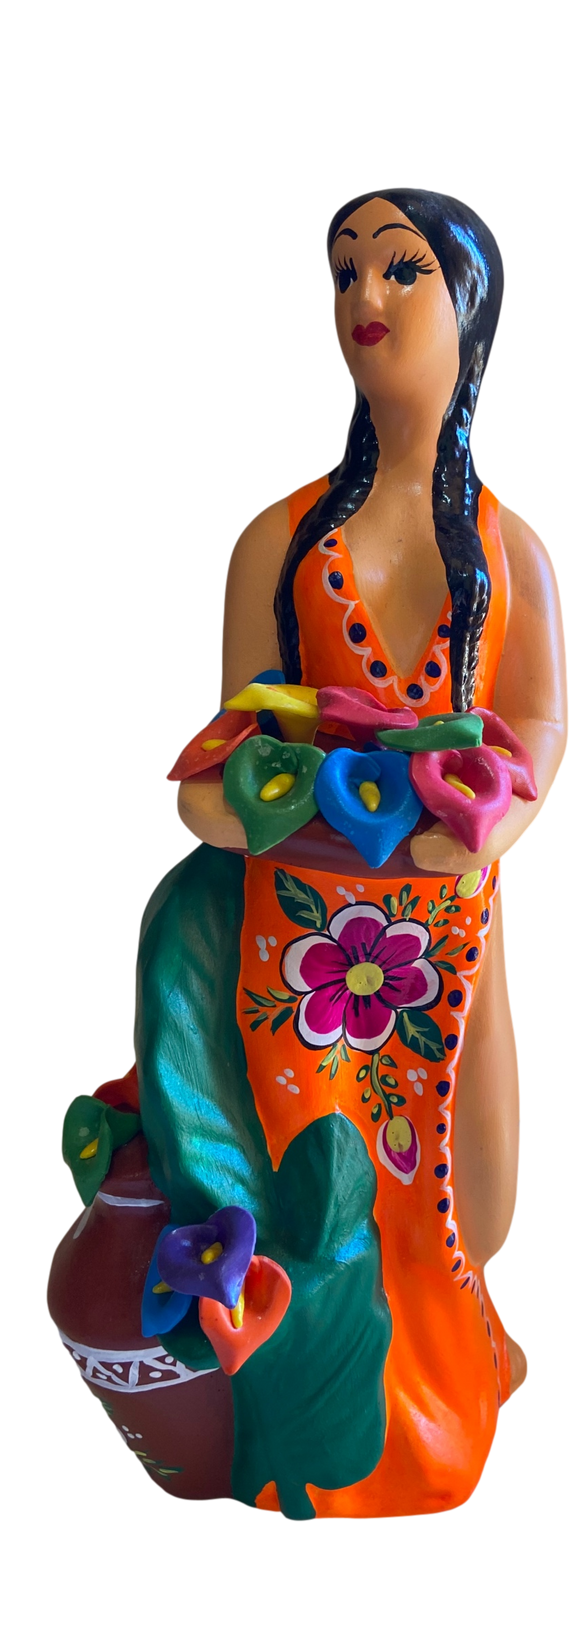 Tabletop Art Ceramic Figurine Lupita Standing Flowers Pottery Handcrafted and Painted in Mexico 13